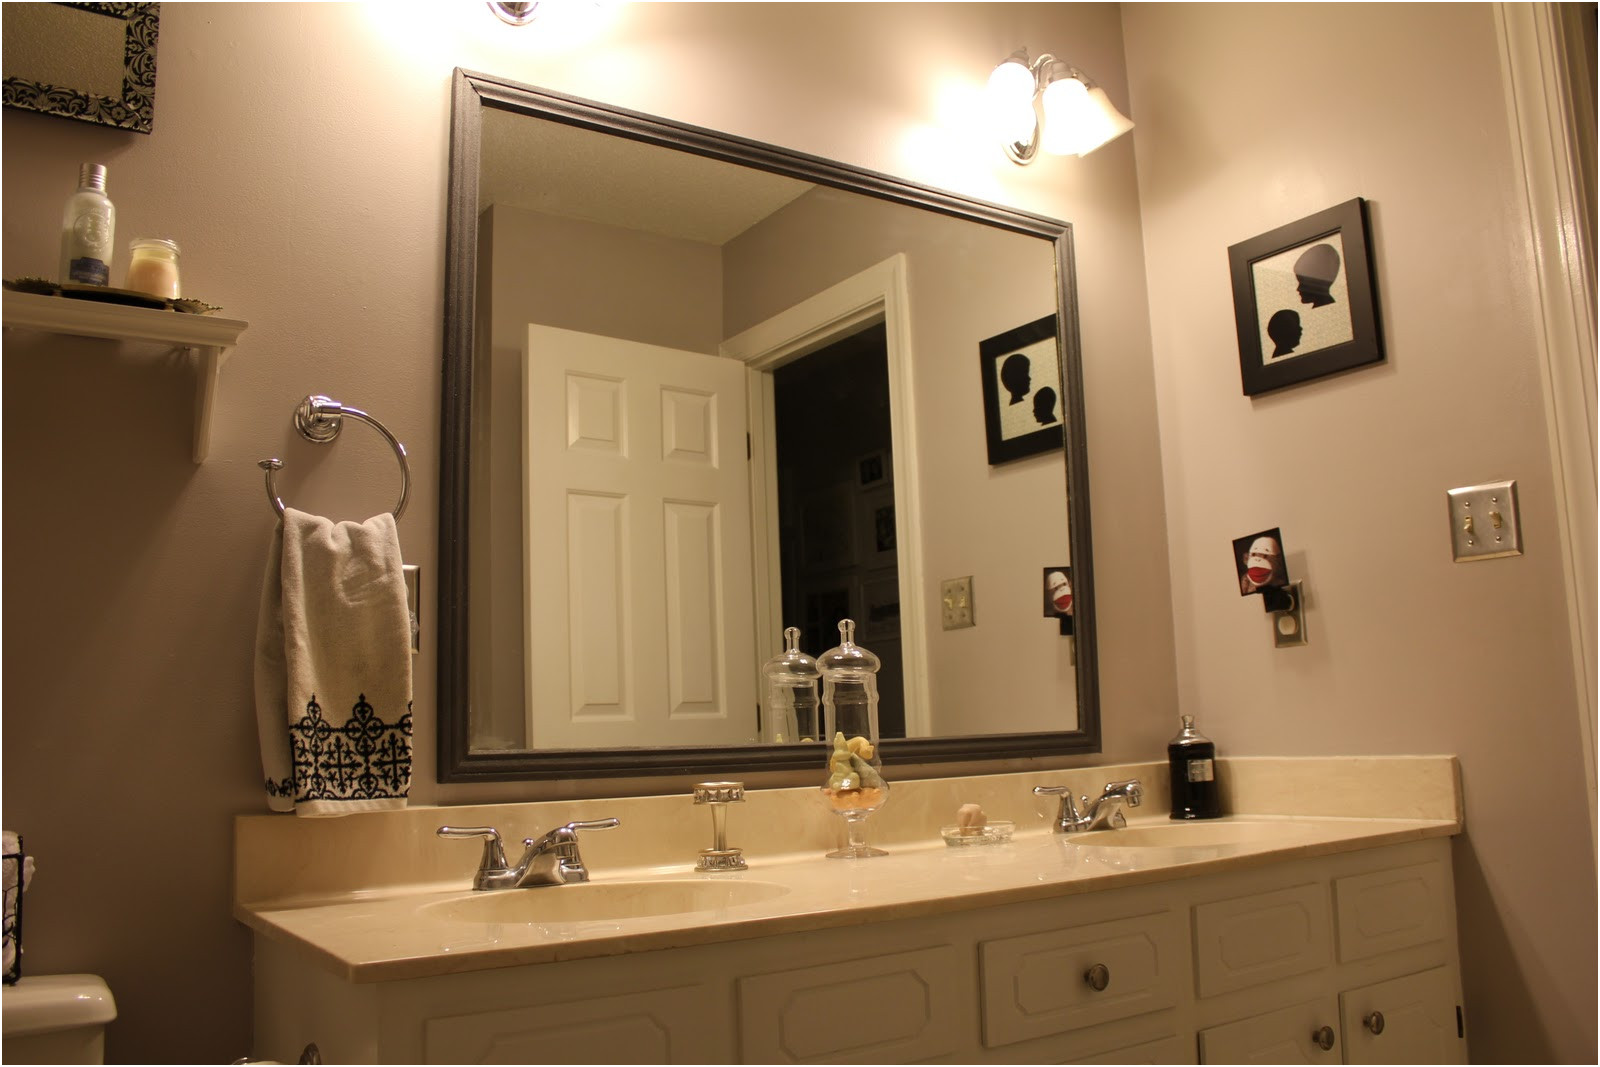 New Frames for Existing Large Bathroom Mirrors